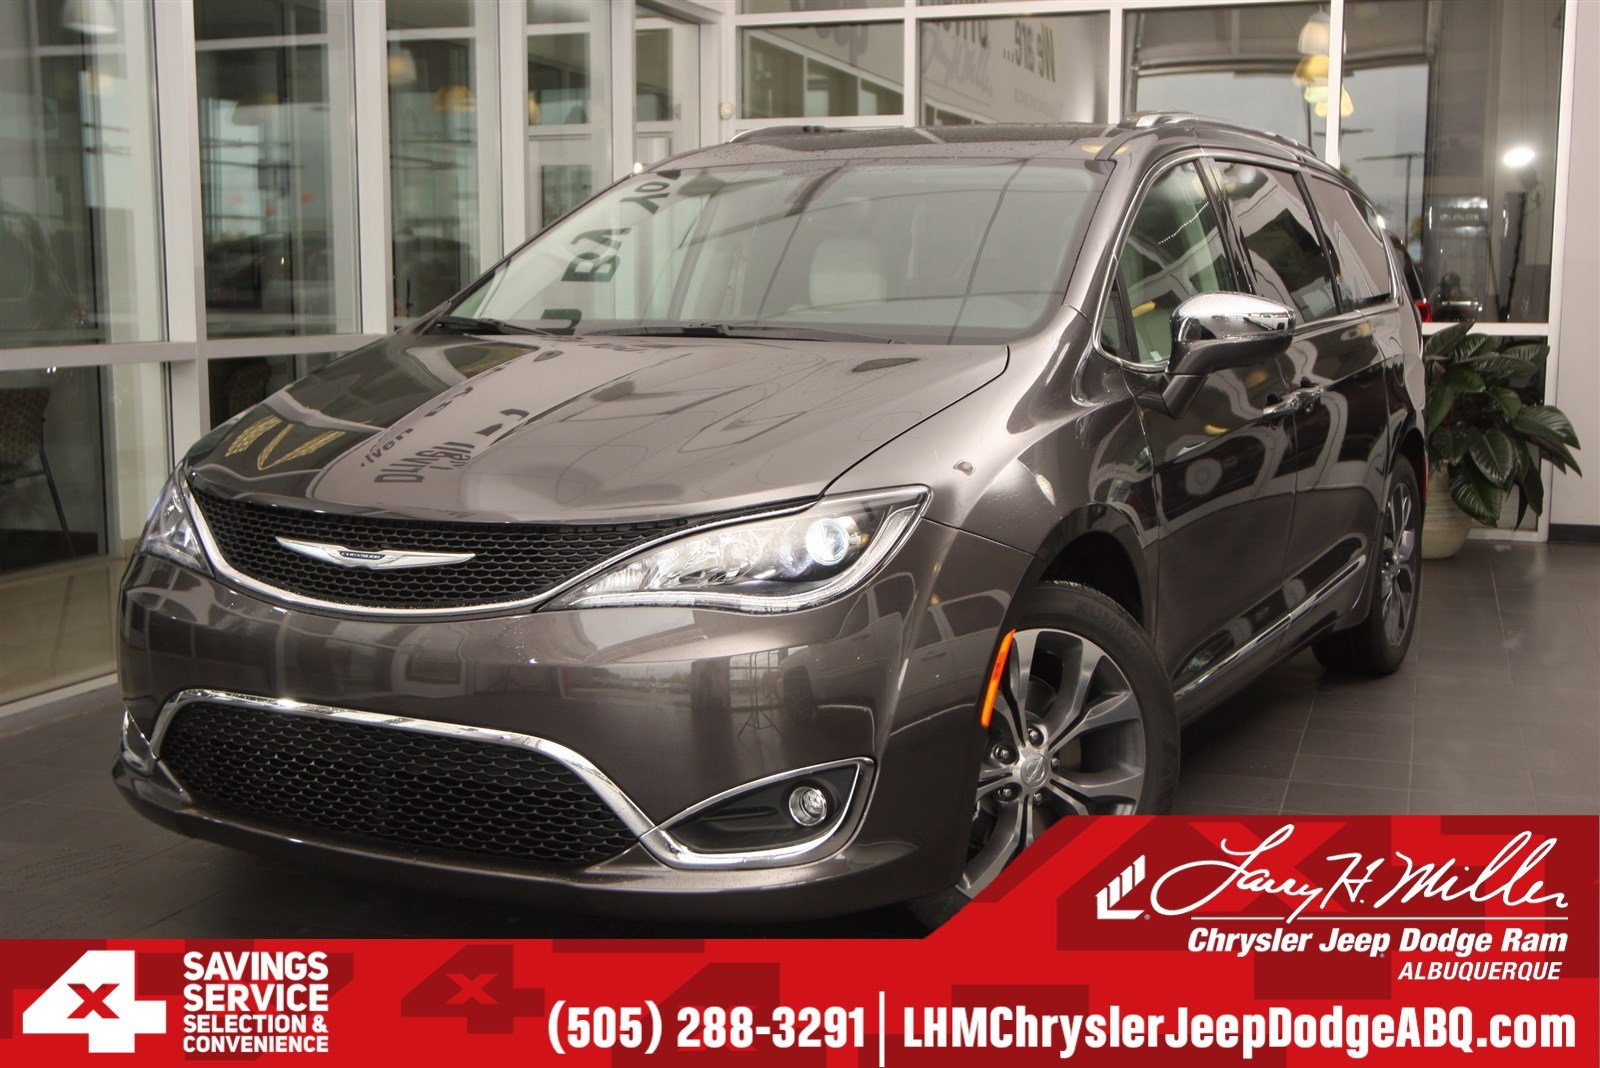 Featured new cars, trucks, and SUVs 2018 Chrysler Pacifica LIMITED Passenger Van for sale near you in Albuquerque, NM